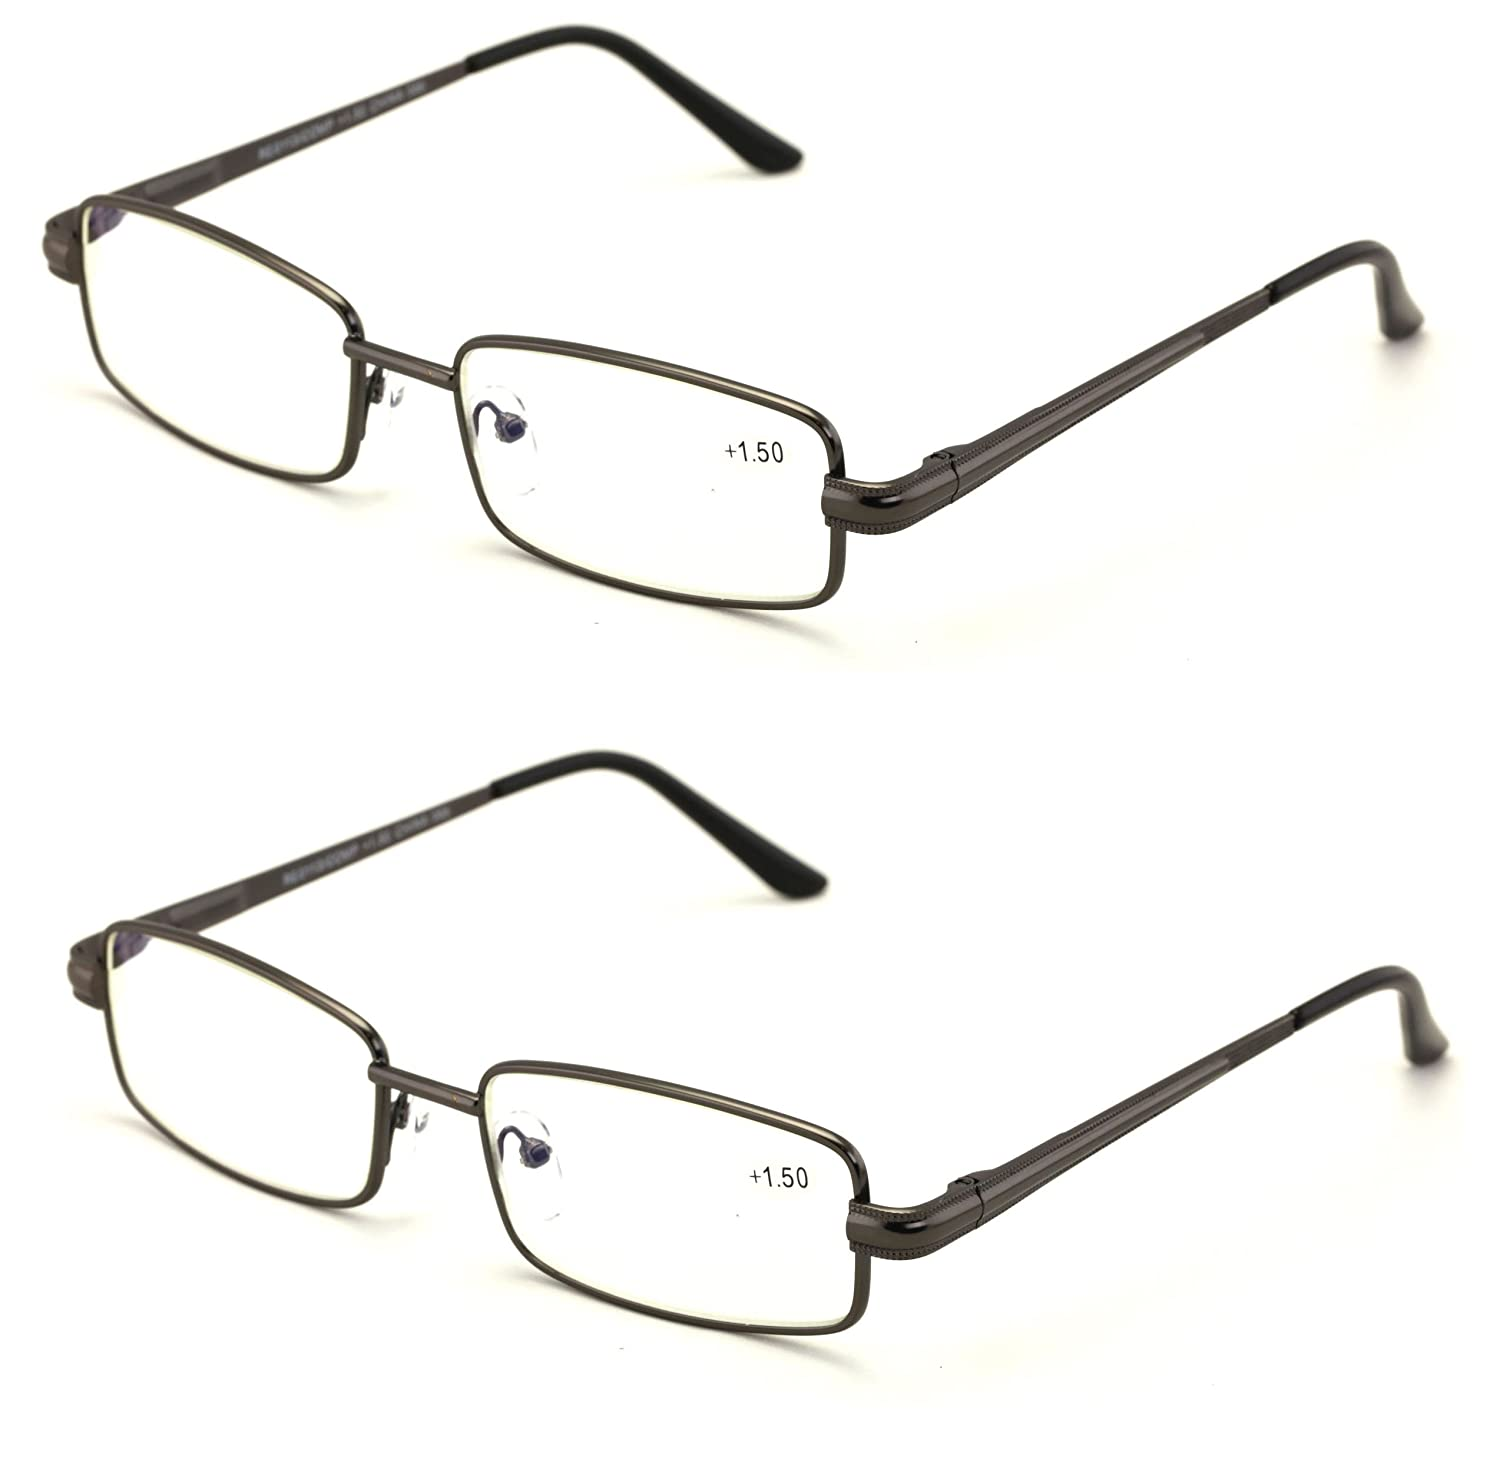 3b363253742 Amazon.com  Men Metal Rectangle Reading Glasses - Blue AR Coating - Reduce  fatigue